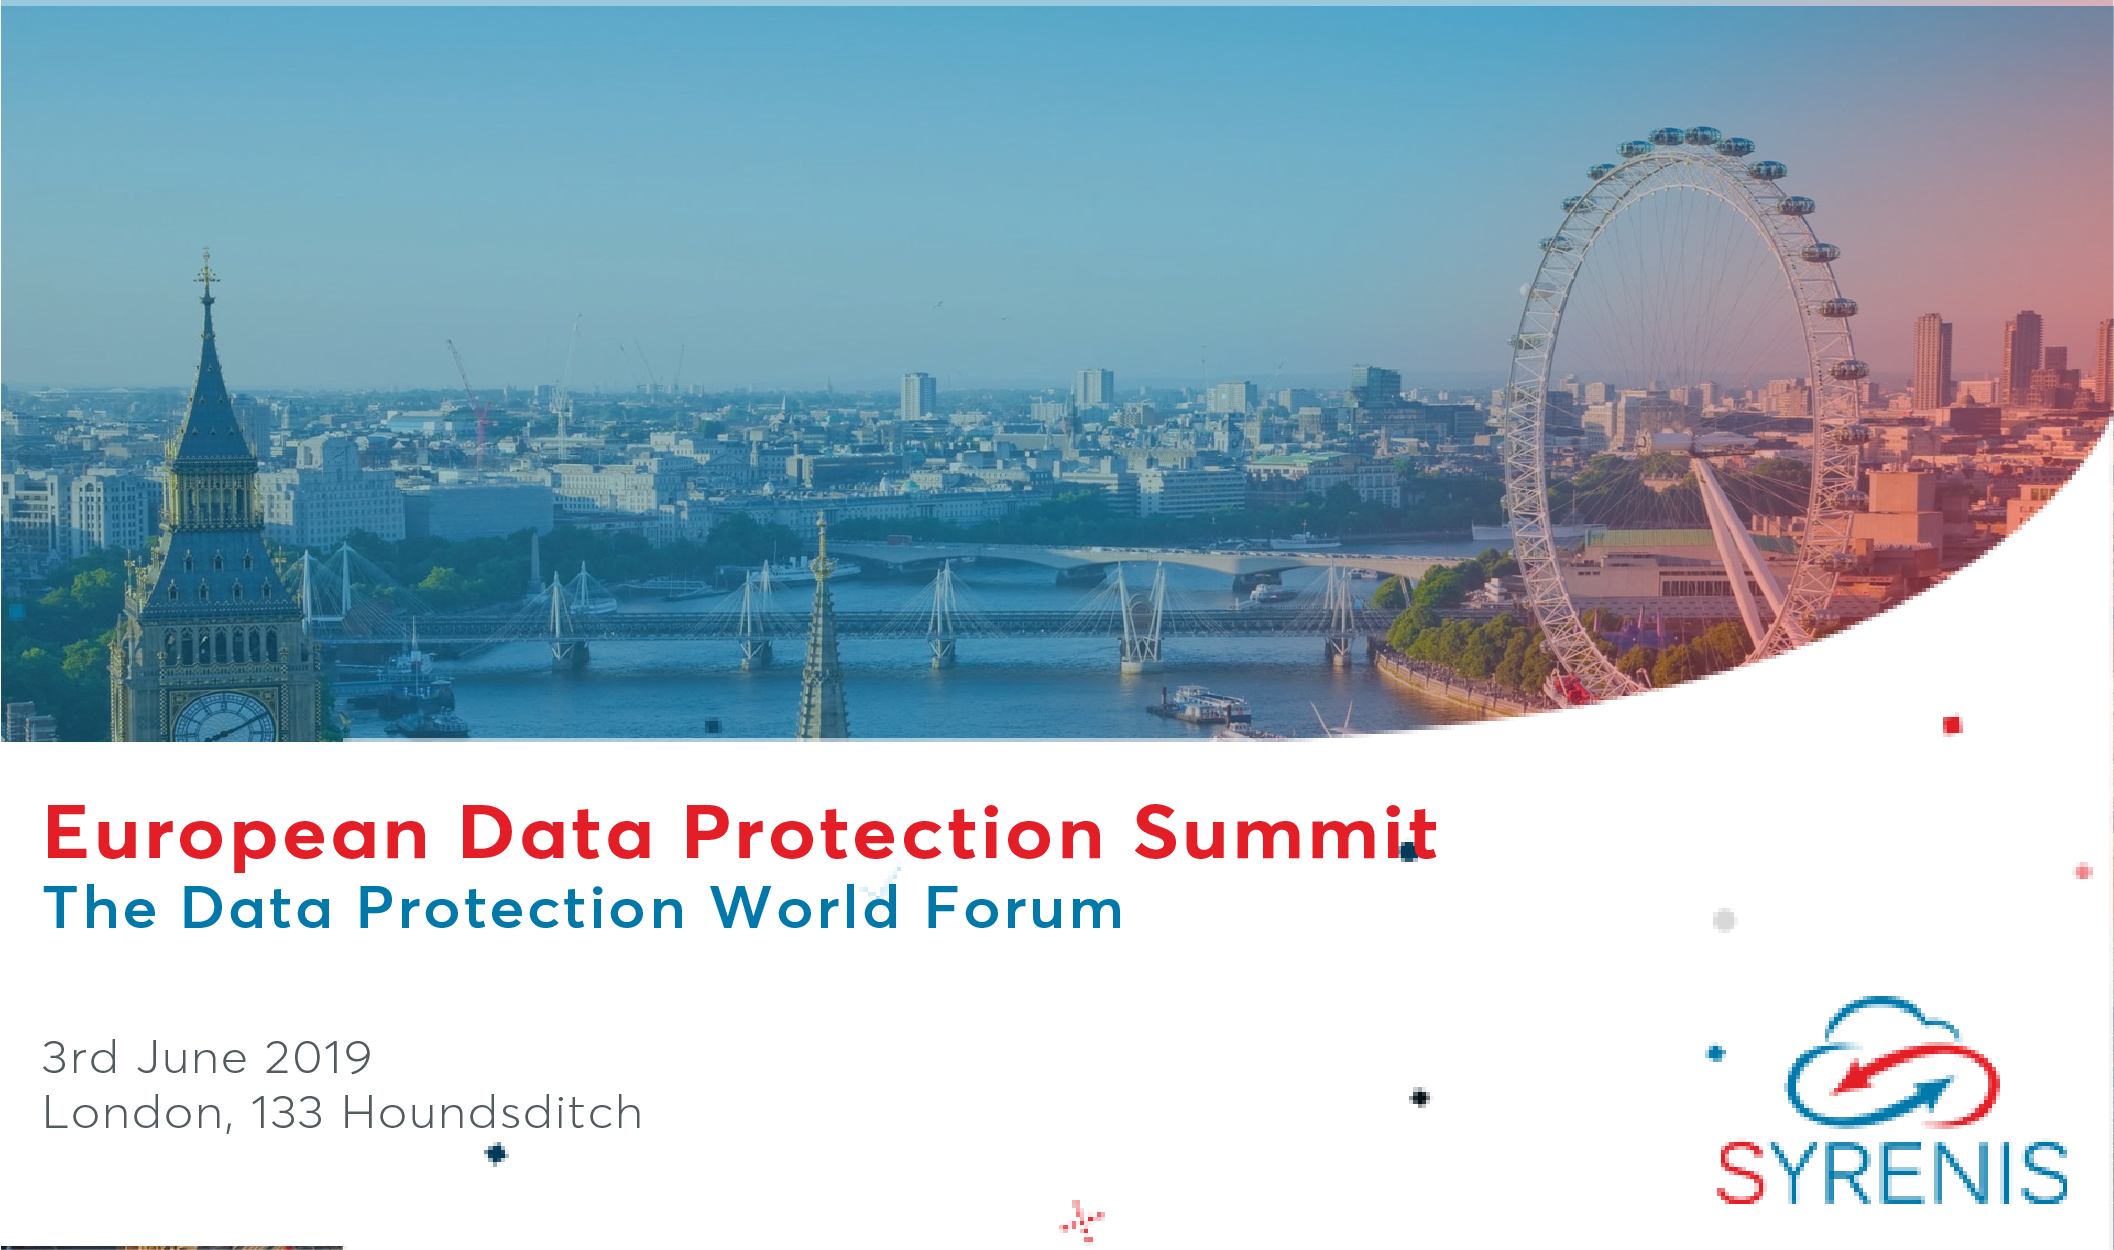 European Data Protection Sumit